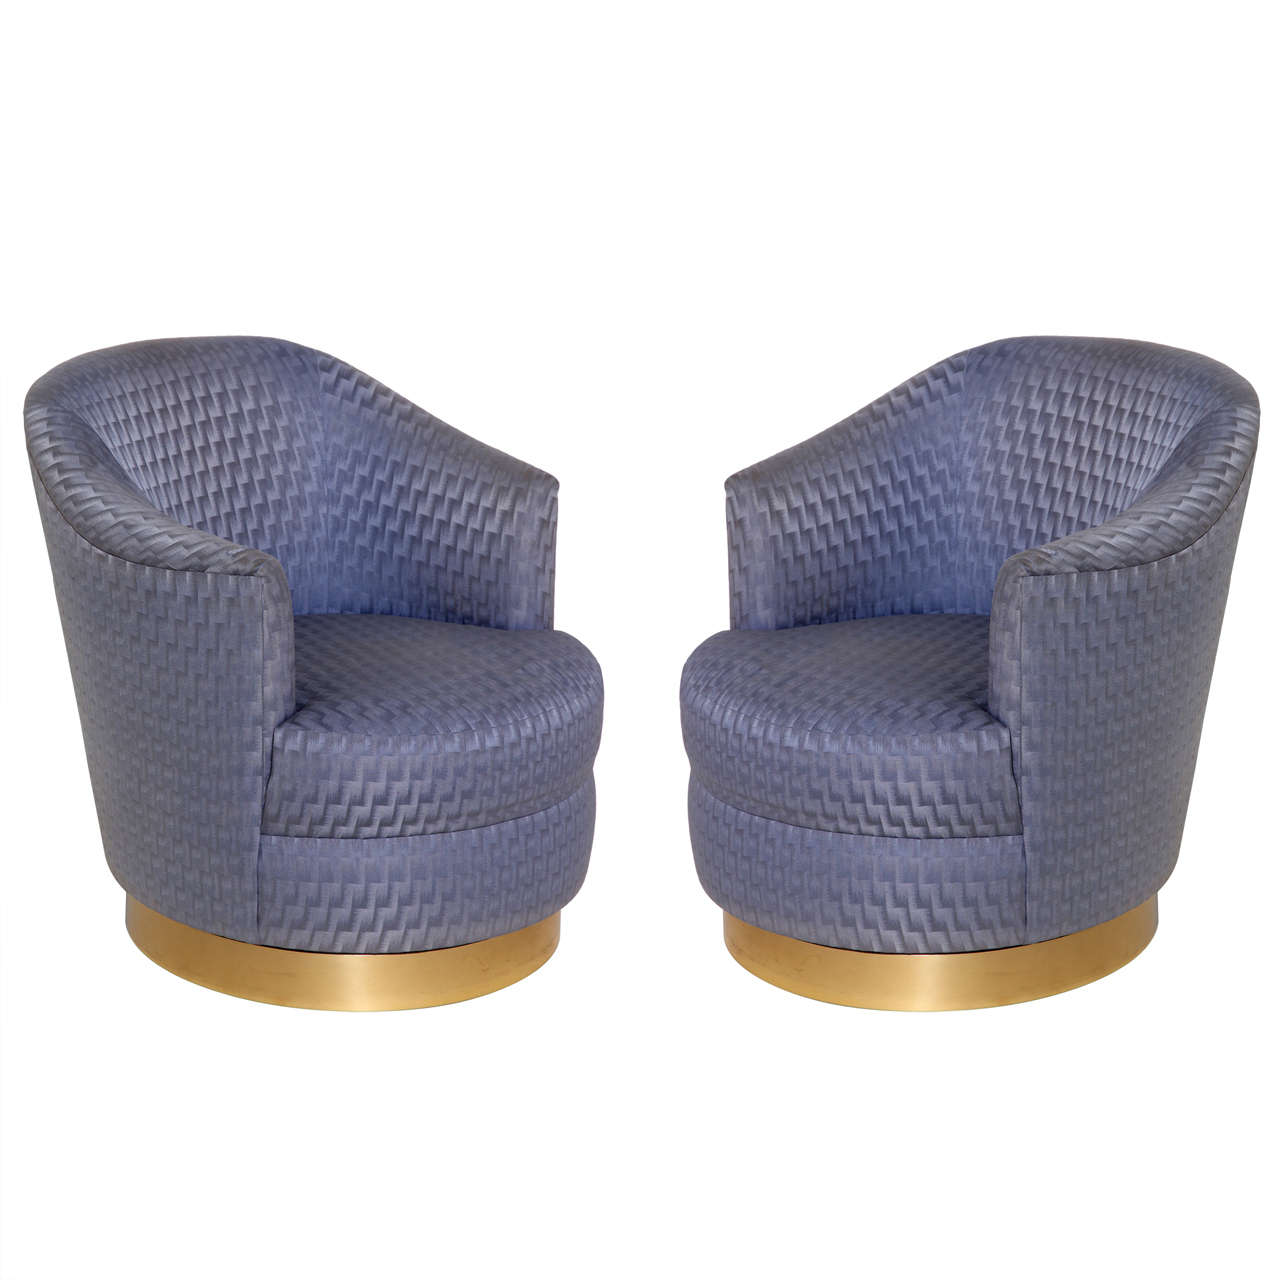 Pair Of Barrel Back Swivel Club Chair By Karl Springer At 1stdibs